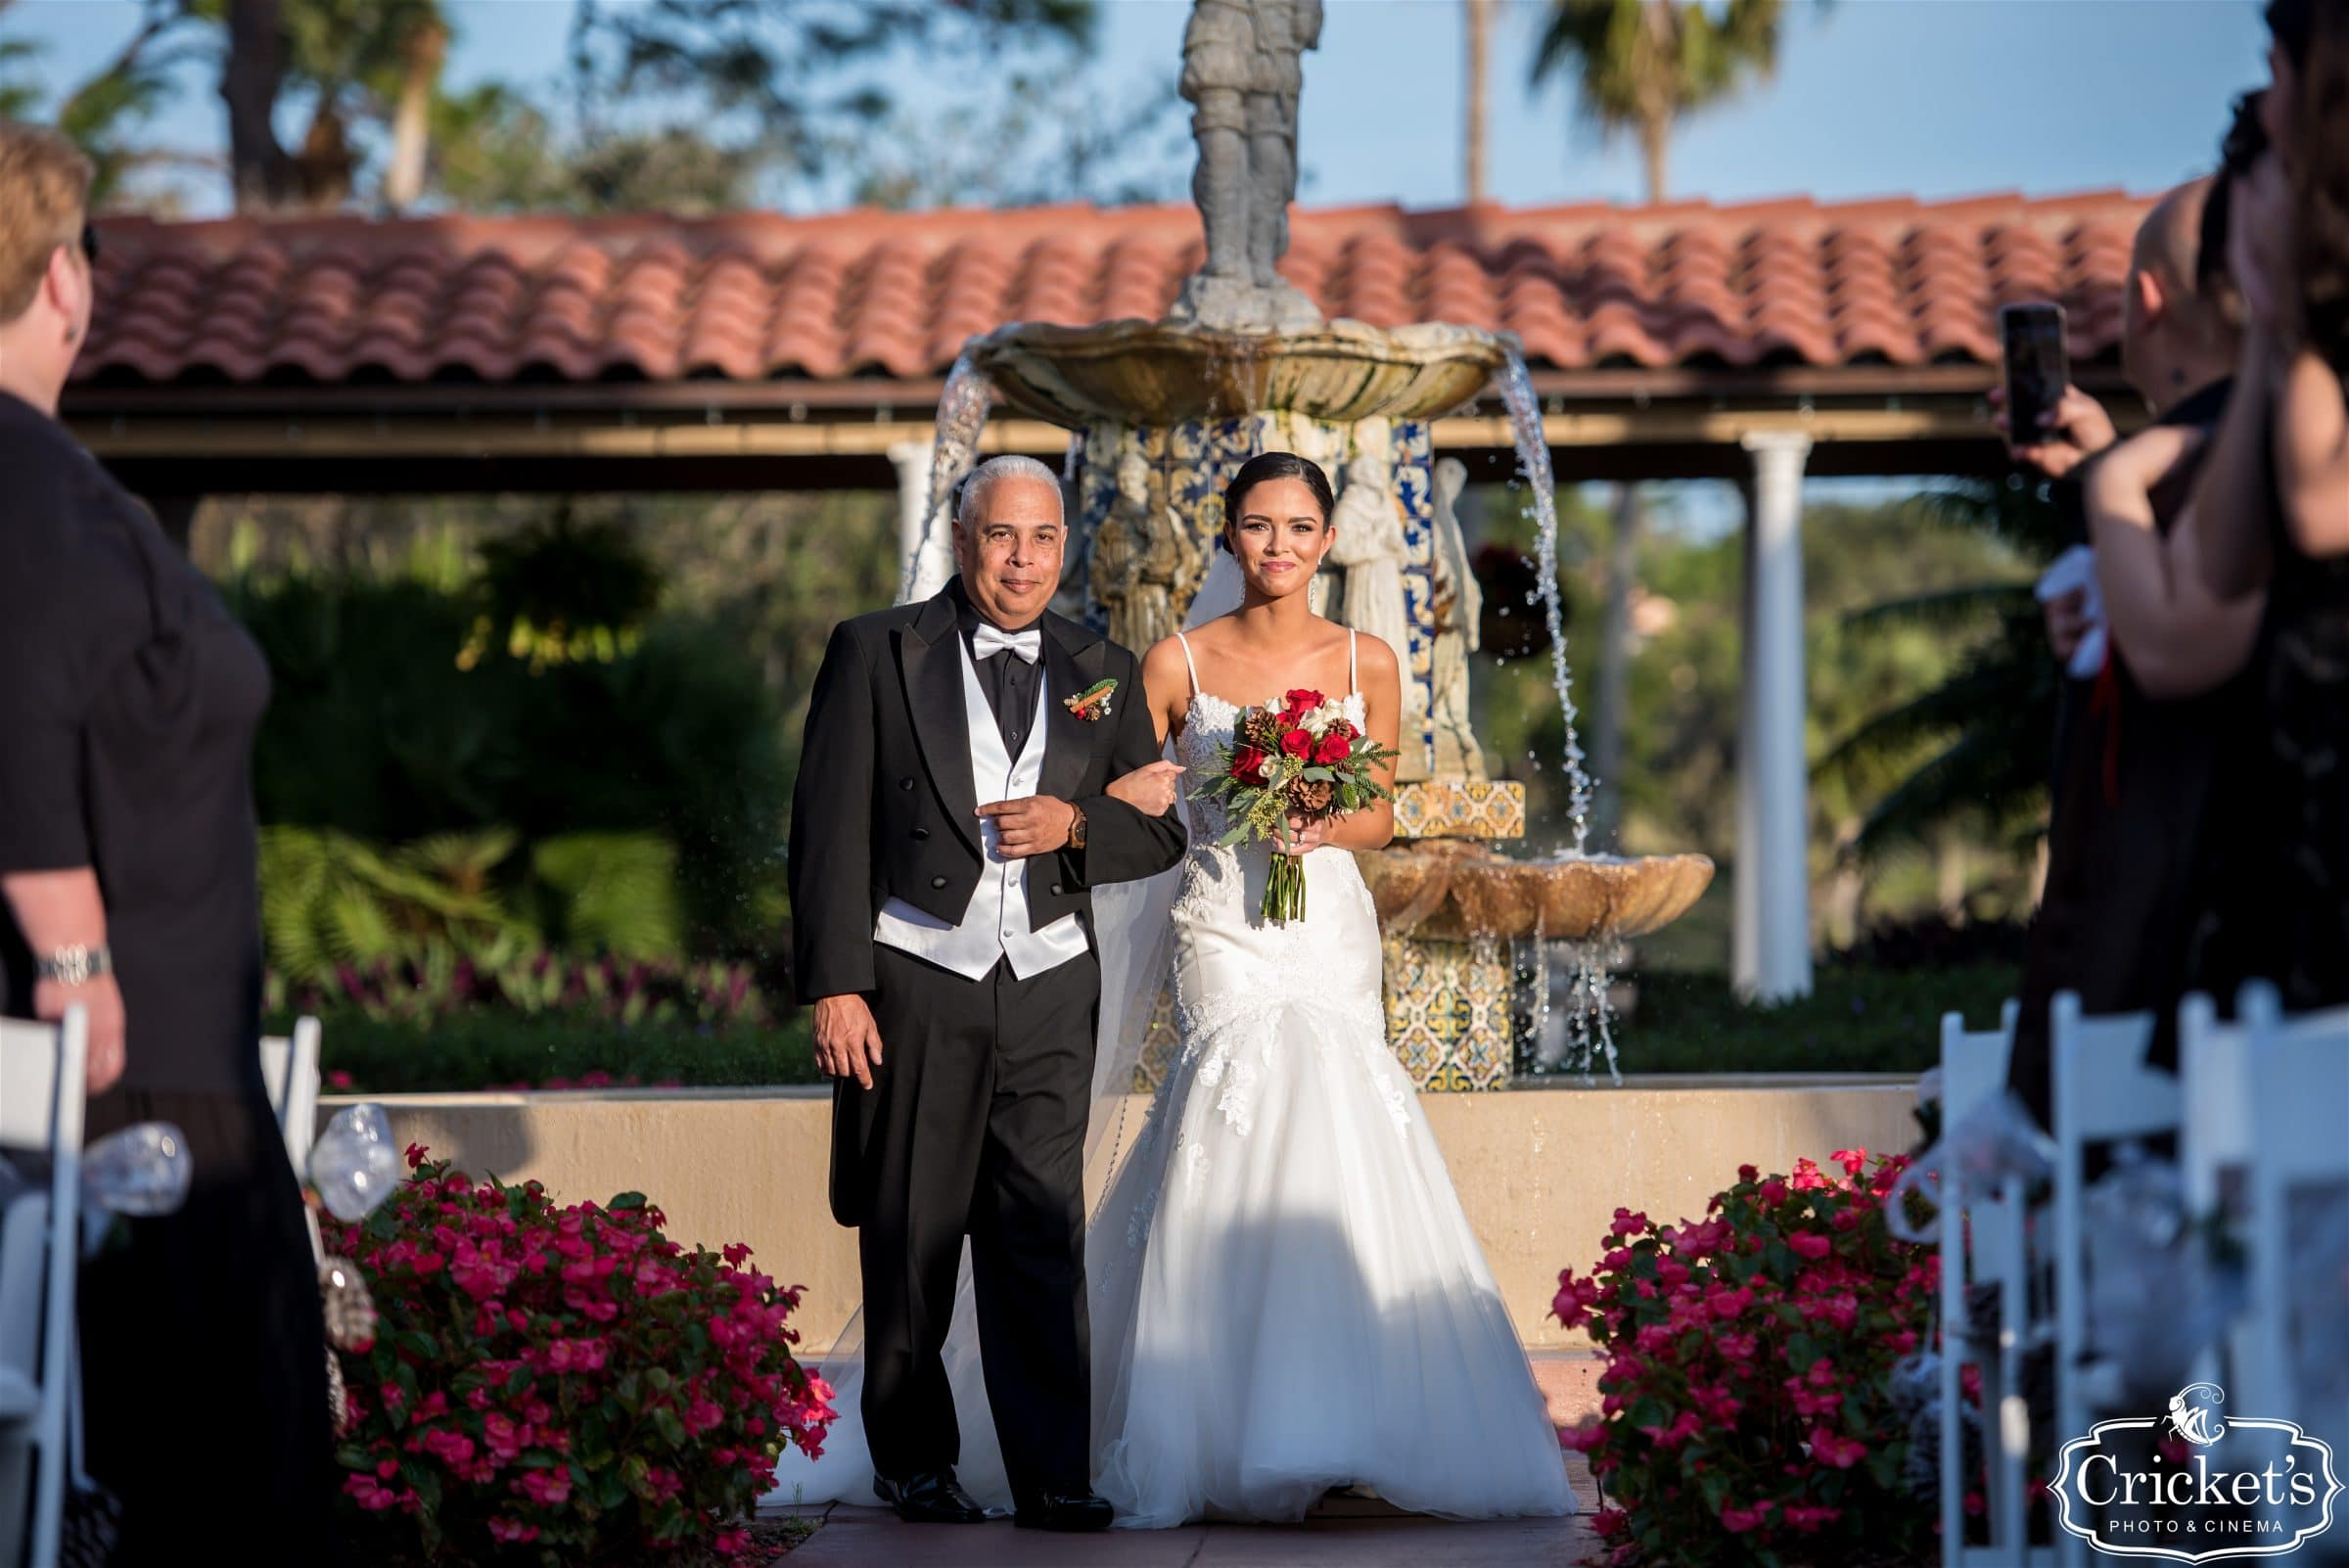 Bride and Father of the Bride walking down the aisle at central florida's mission inn resort plaza de la fontana